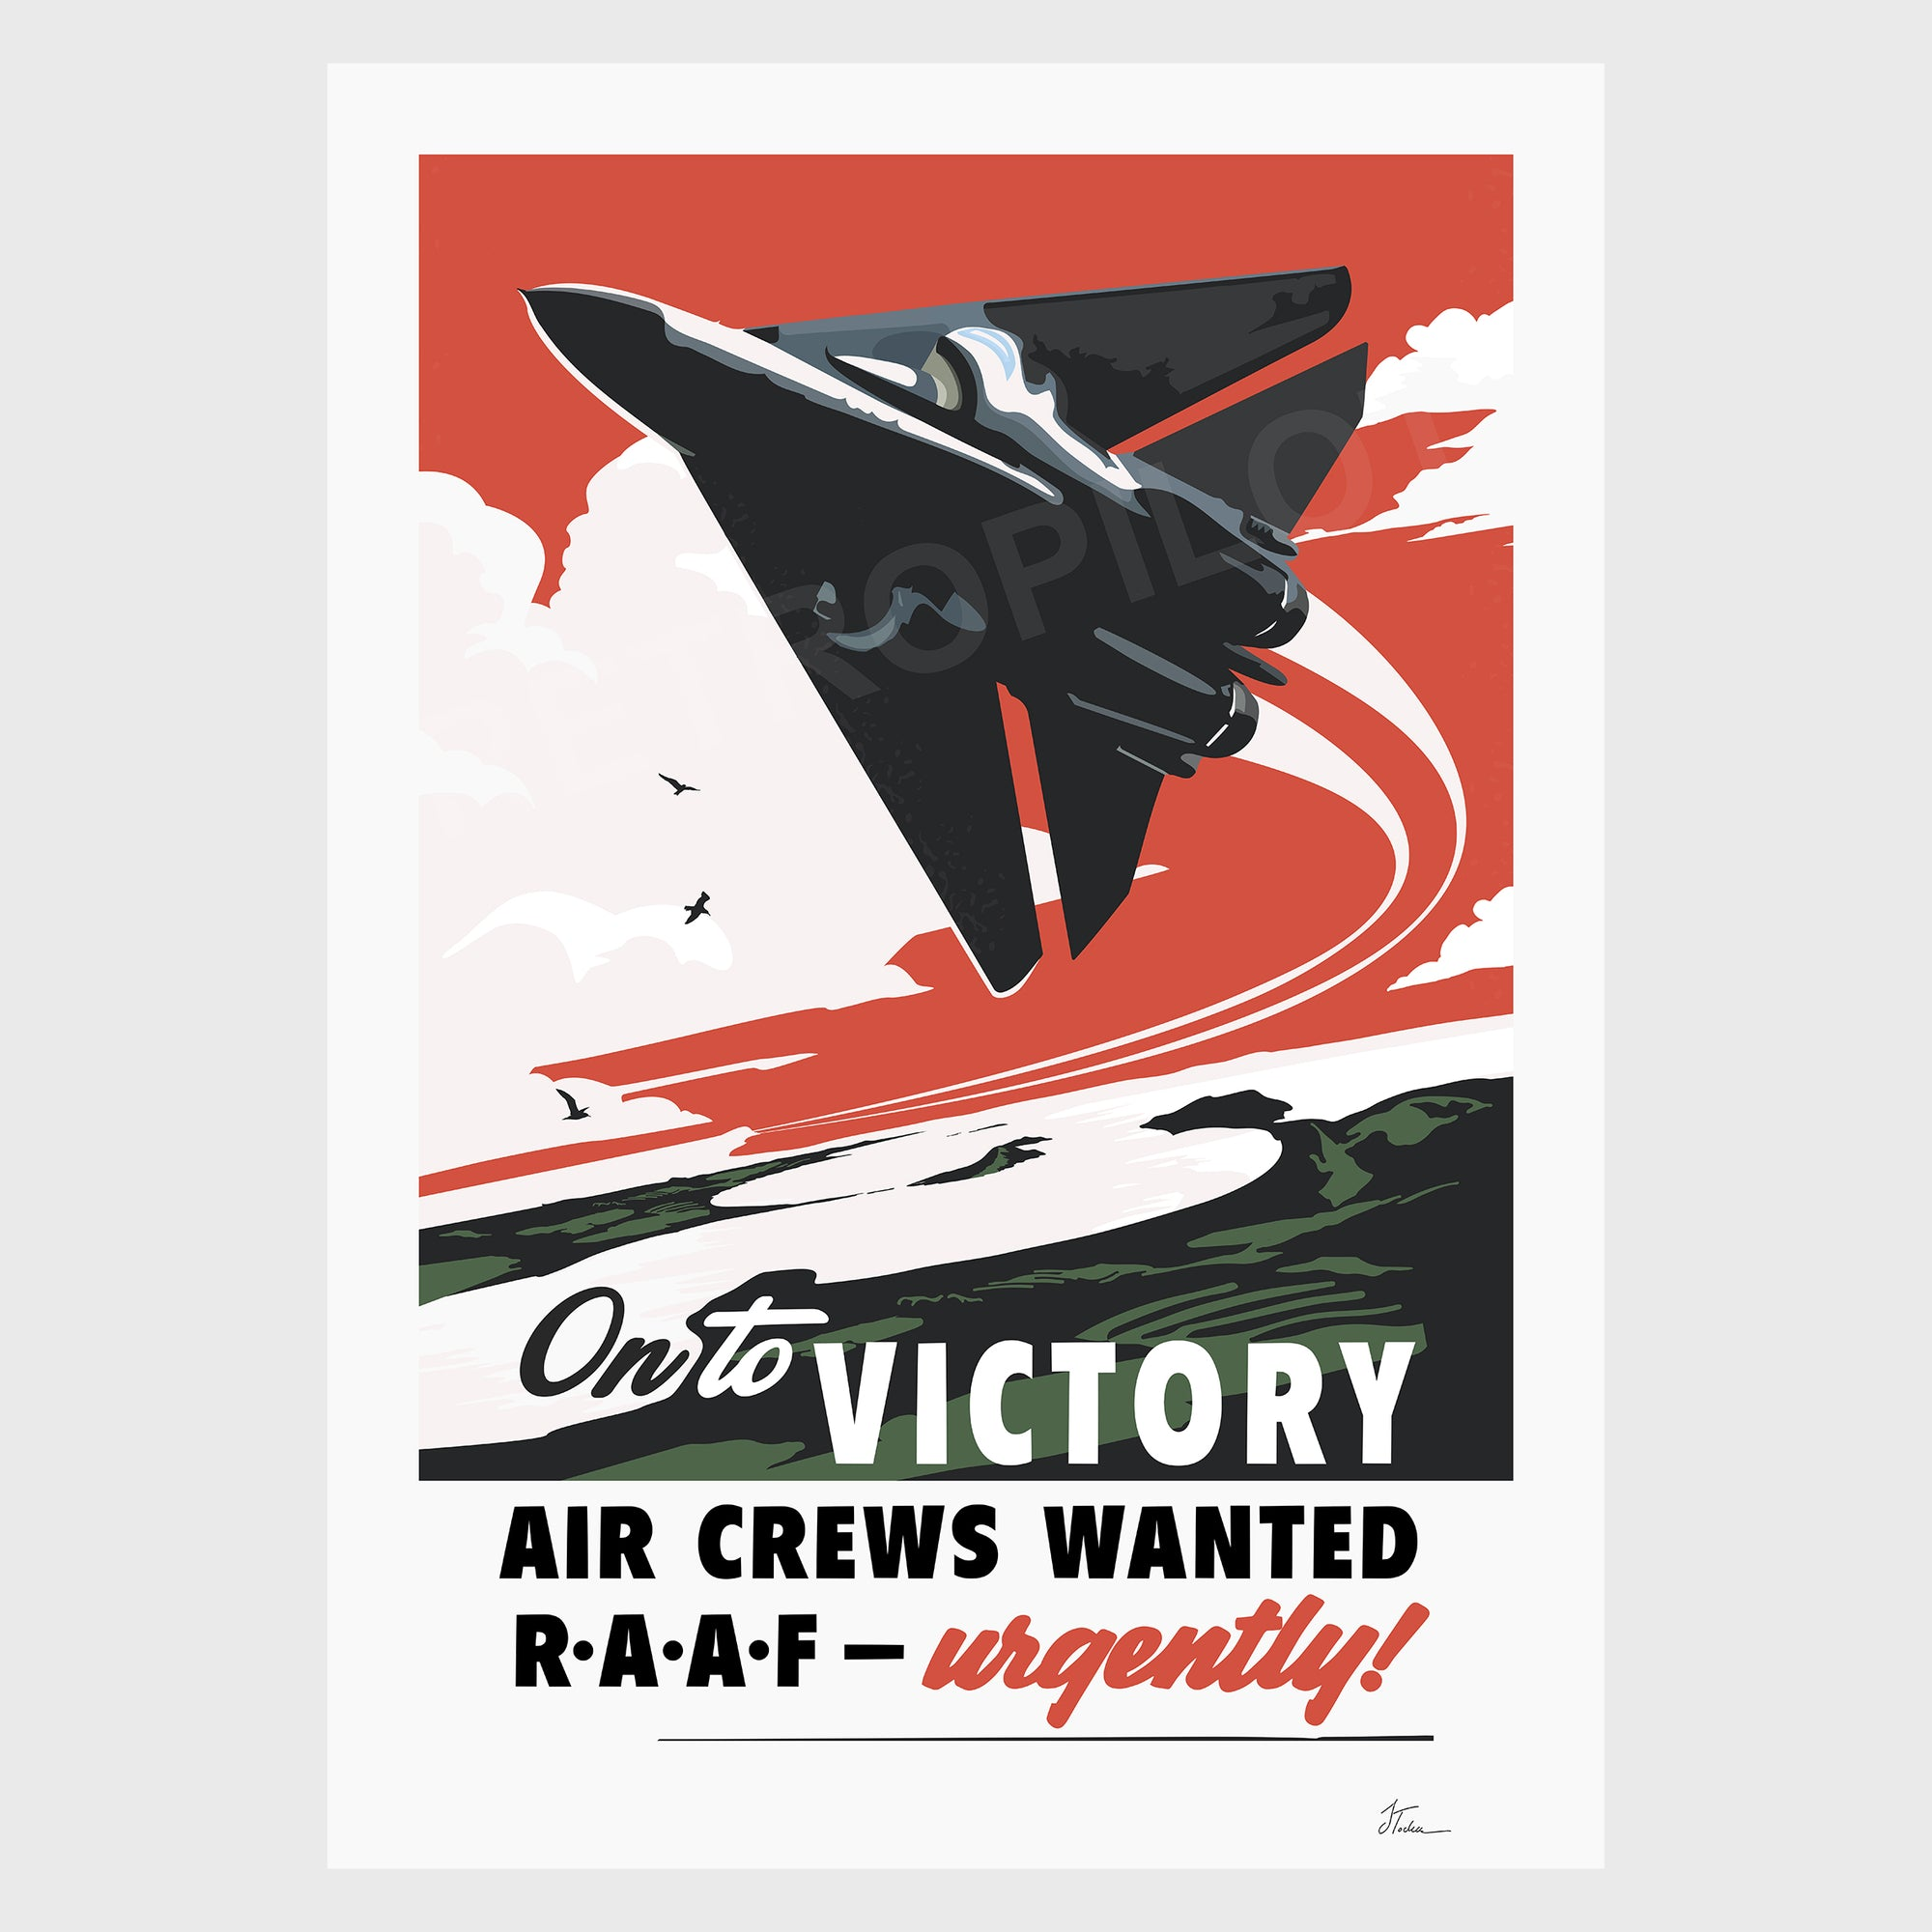 F-111 - On to Victory